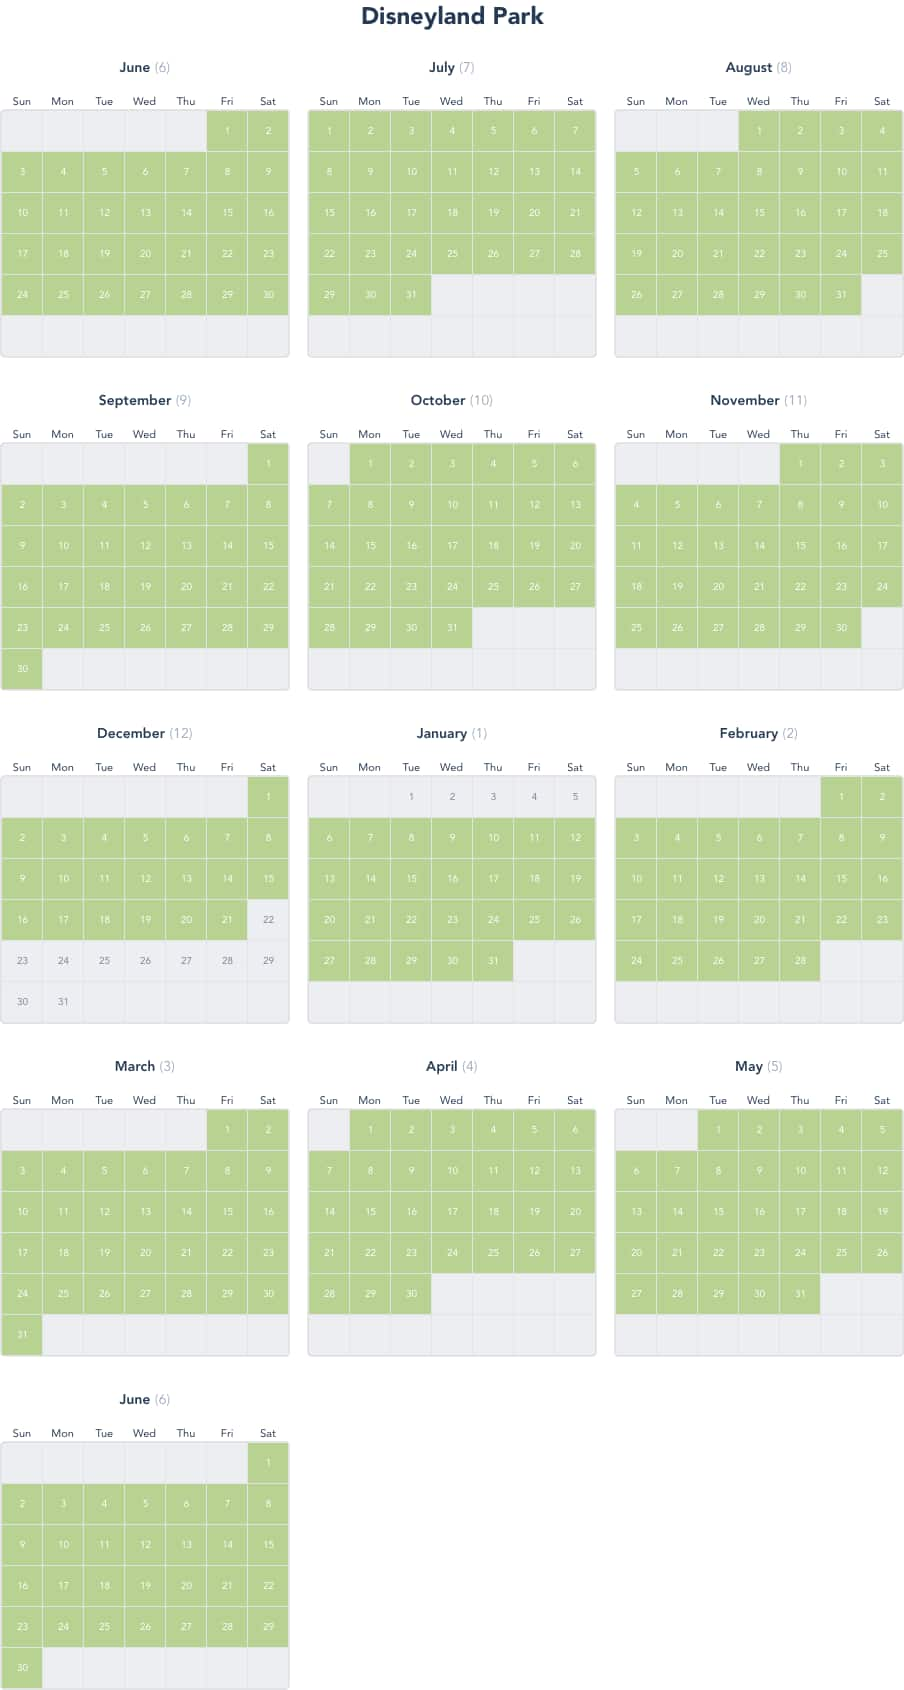 Blockout dates for the next 13 months follow. To avoid interruption, do not scroll, swipe or tab. For the Disney Signature Annual Passport, these are the currently scheduled blockout dates for Disneyland Park. December 22, 2018 to January 5, 2019.